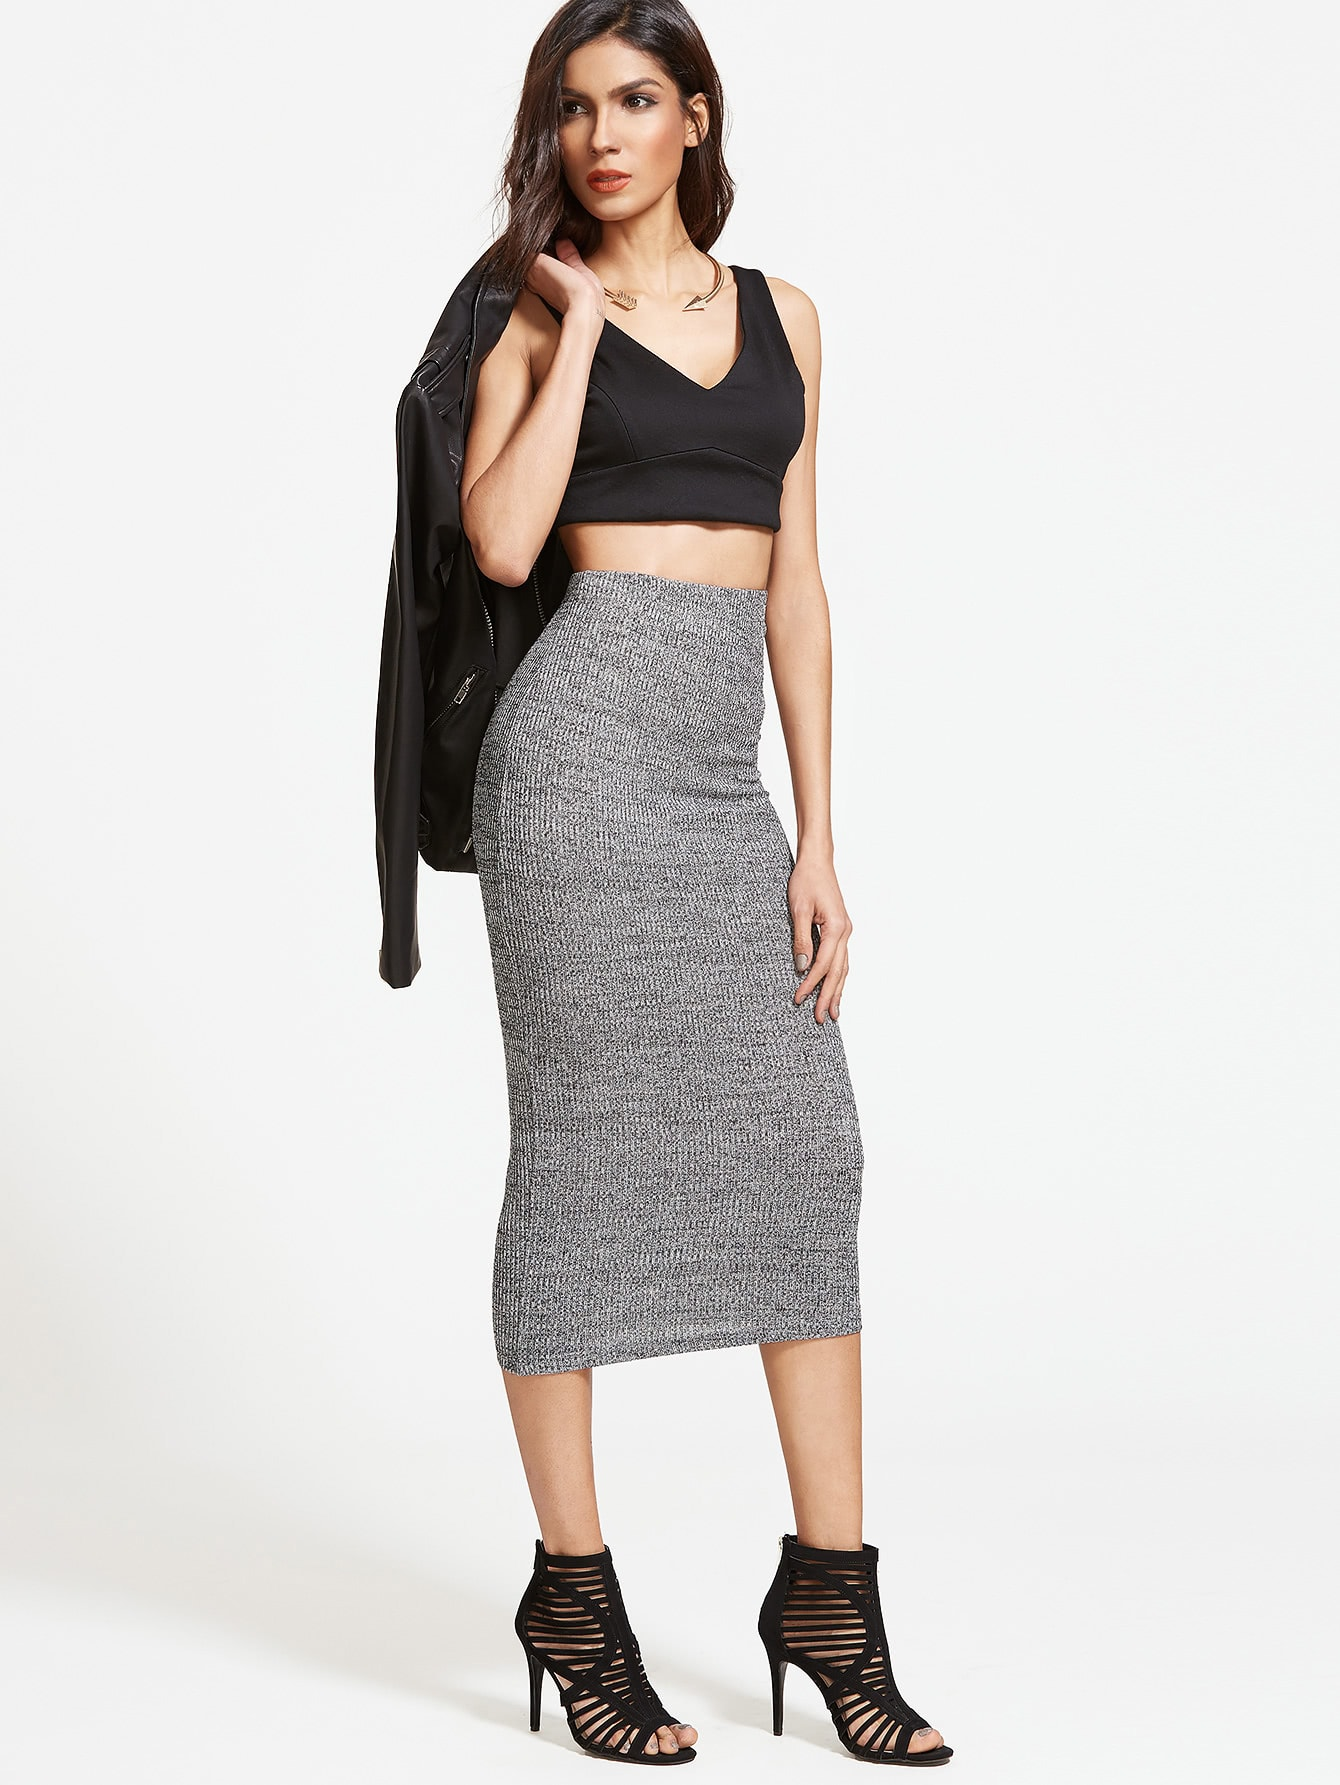 Ribbed Knit Pencil Skirt ribbed knit pencil skirt